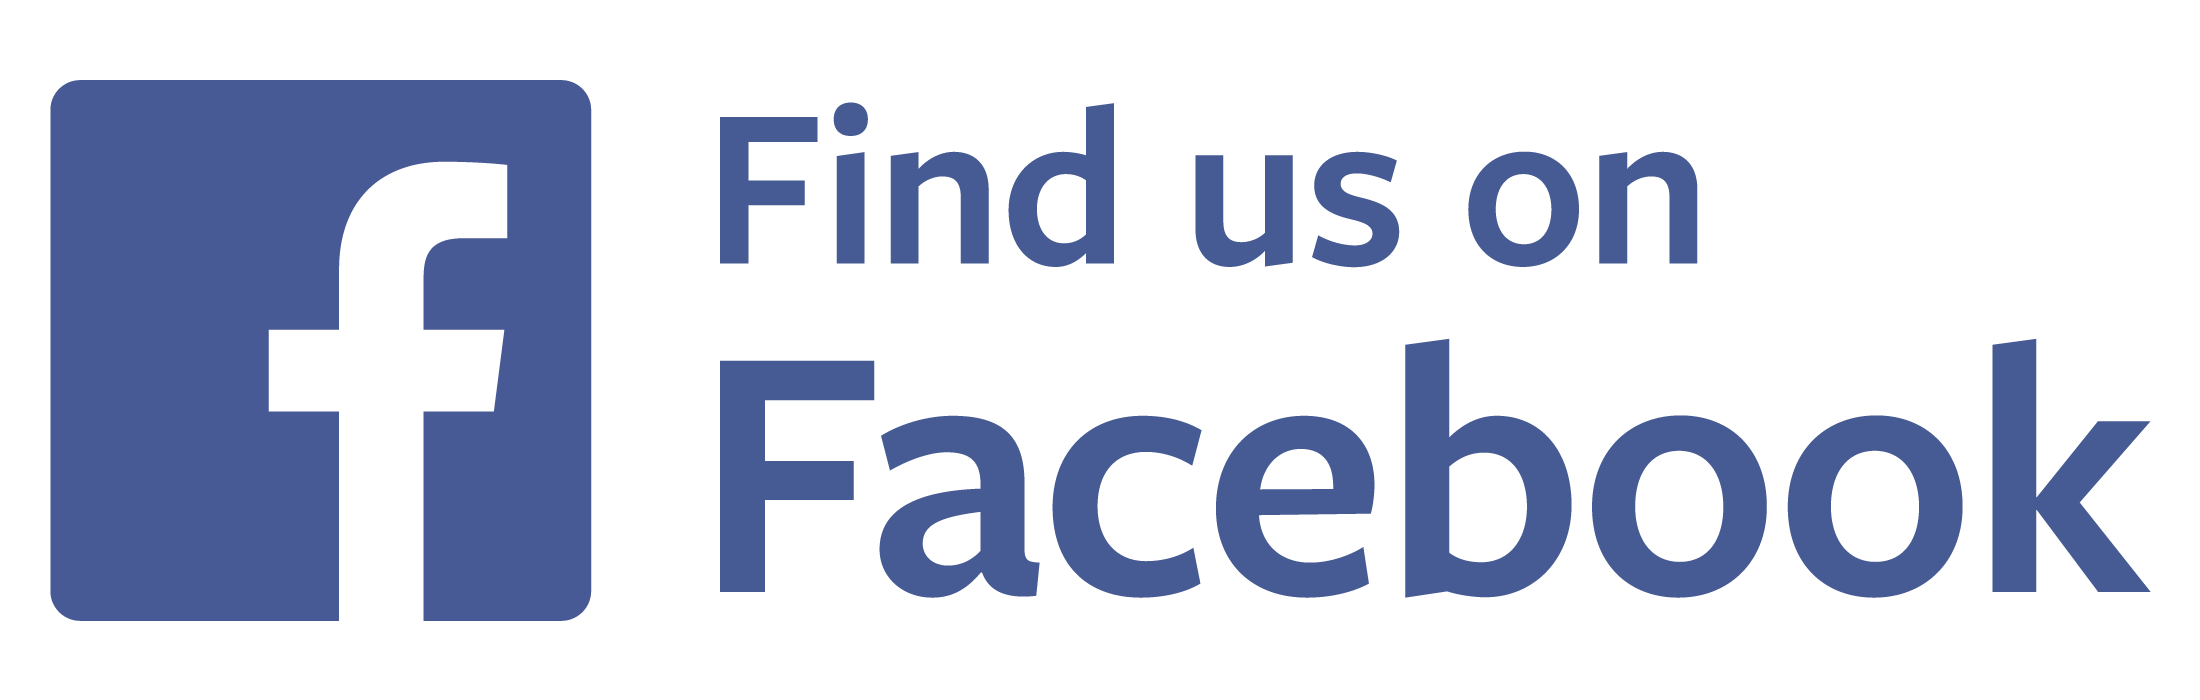 find-us-on-facebook-logo-transparent-vector.png